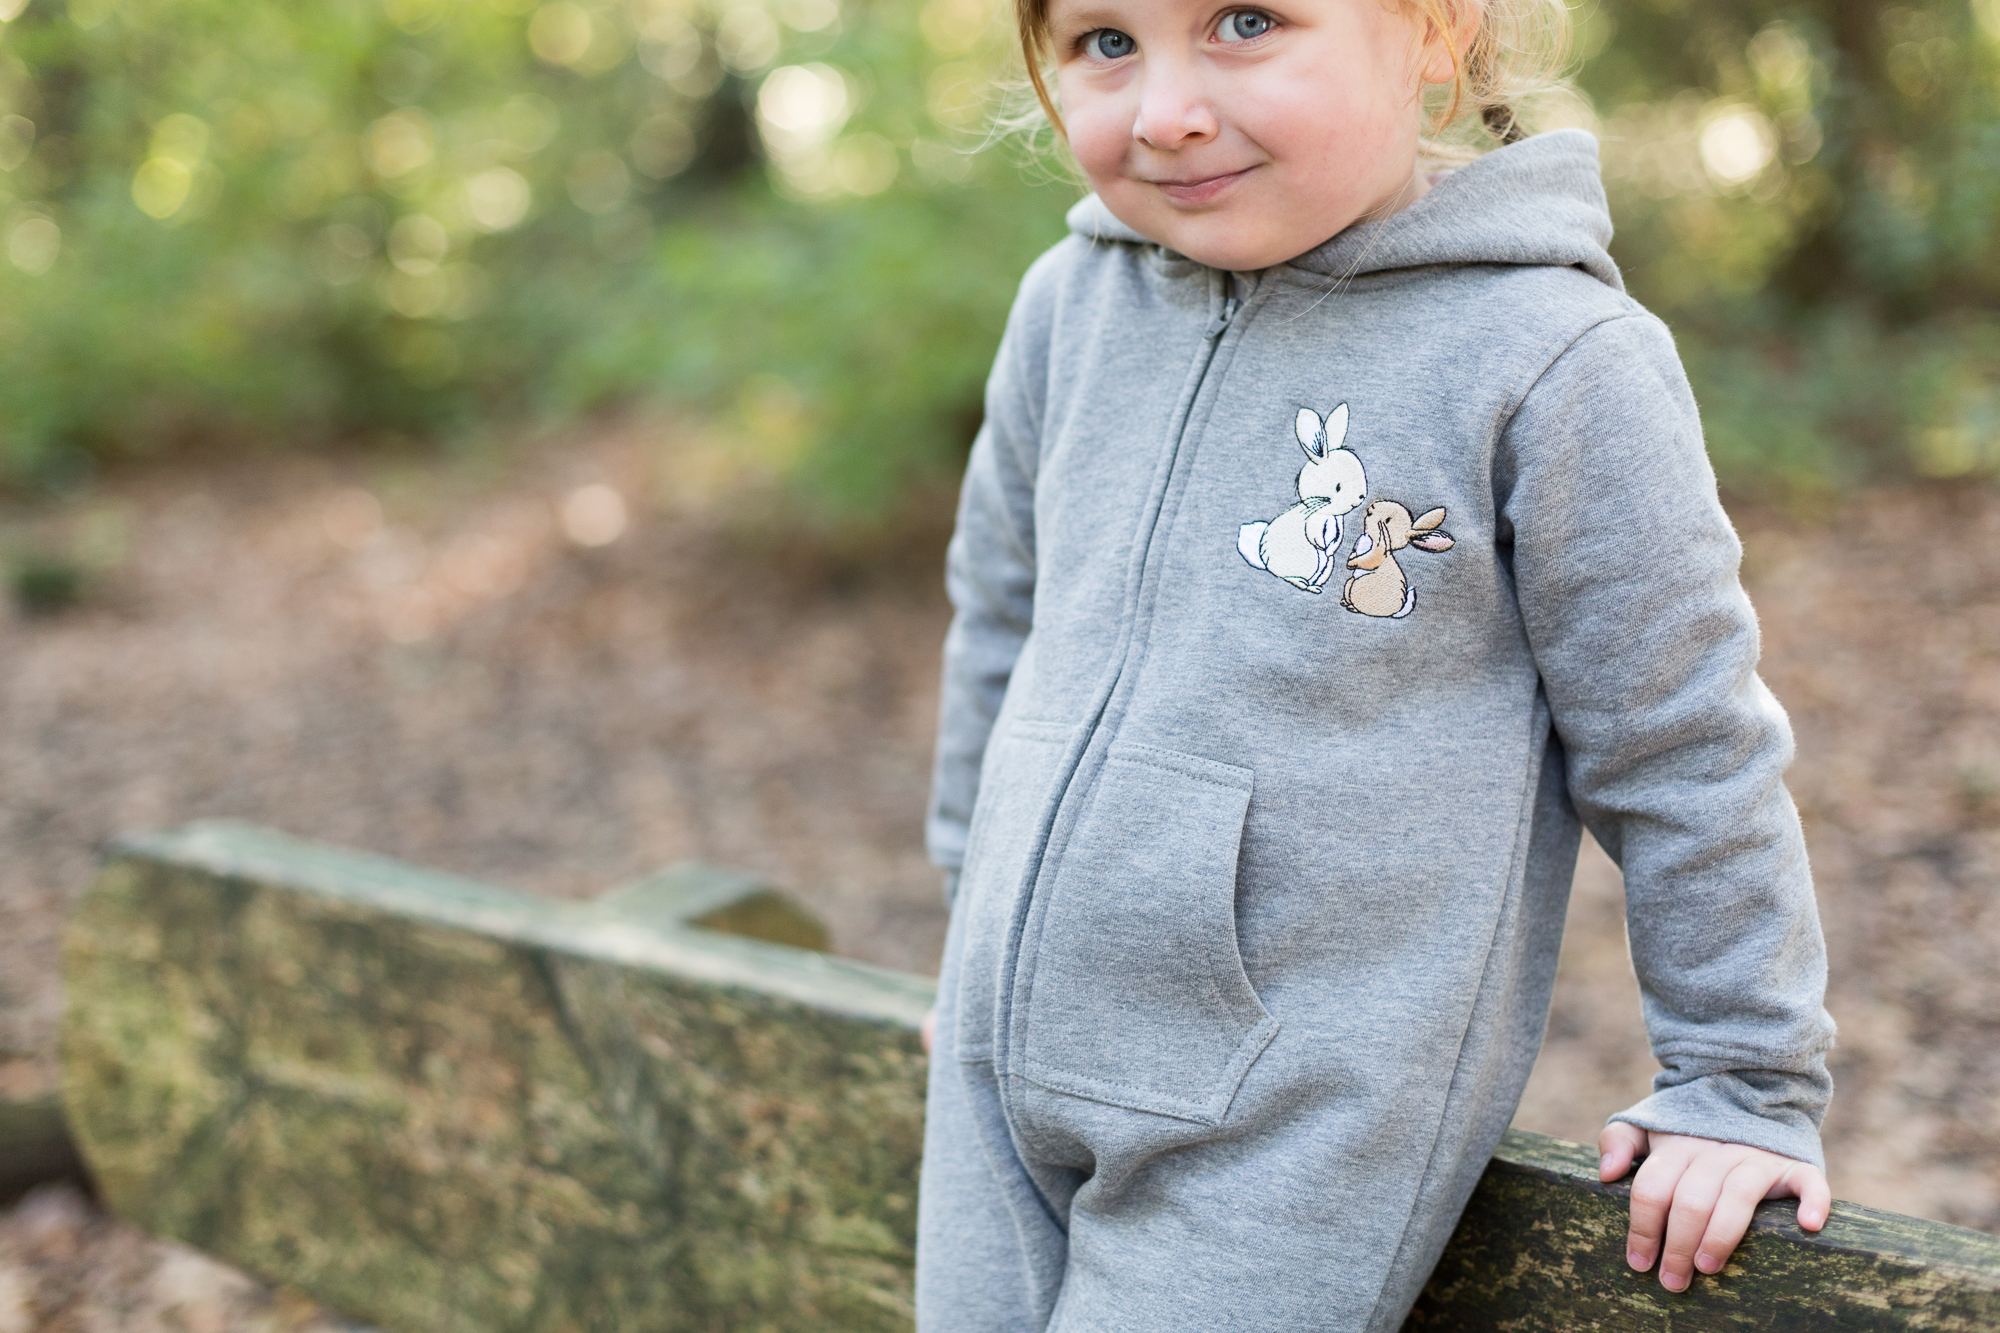 clothing brand model shoot by Nina Callow Commercial and Family photographer Bexley, London